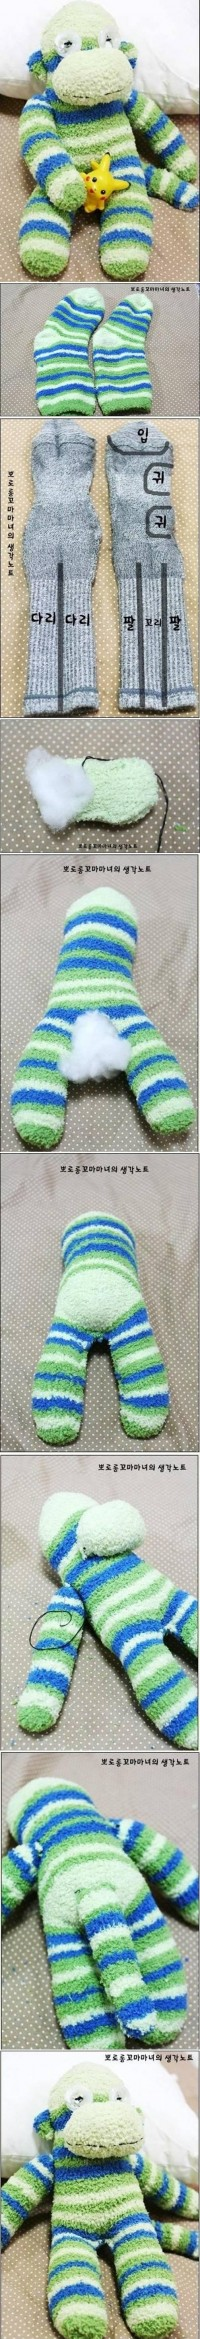 DIY Sock Monkey Terry DIY Projects | UsefulDIY.com